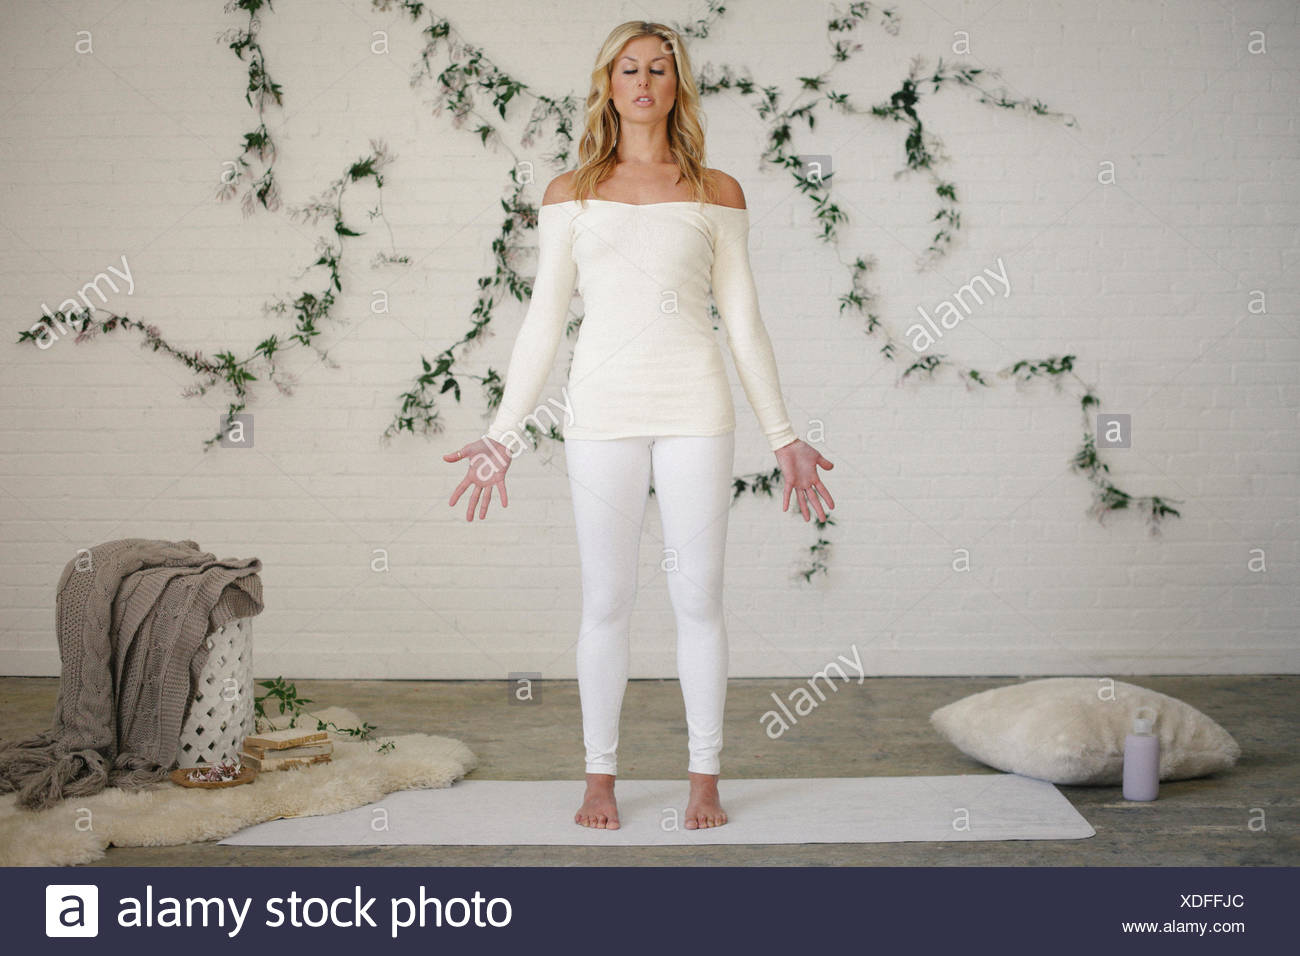 A blonde woman in a white leotard and leggings, standing on a white mat in a room. A creeper plant on the wall behind her. - Stock Image